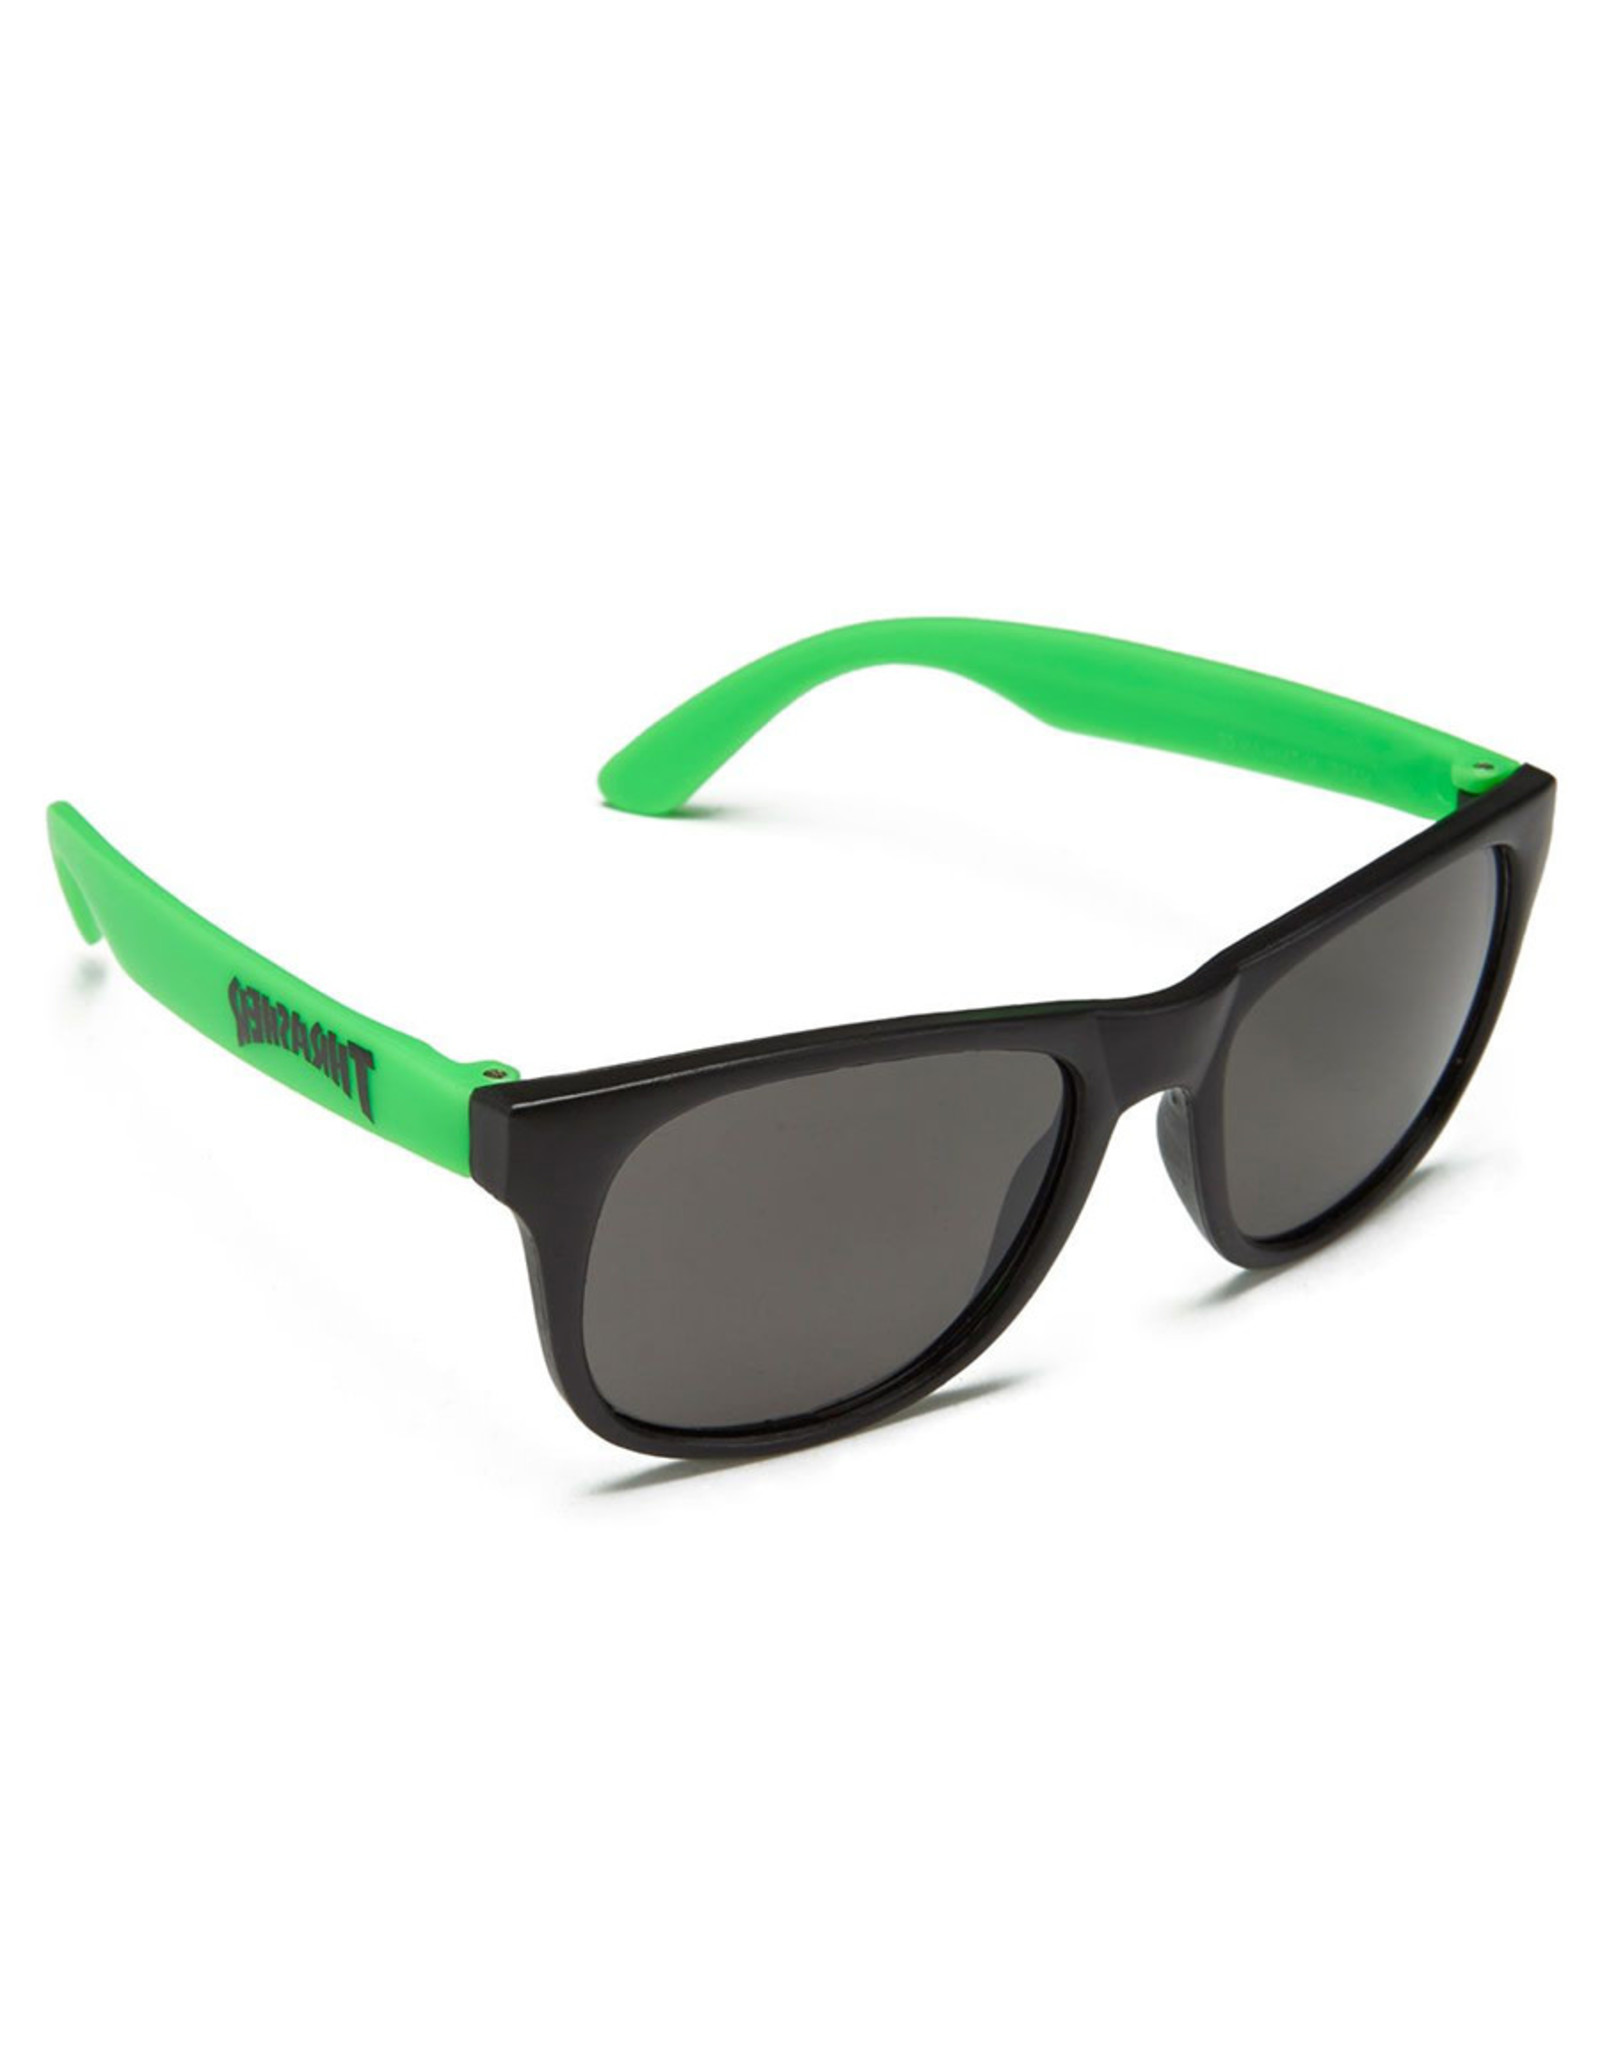 Thrasher Thrasher Sunglasses Sk8 Mag (Black/Green)